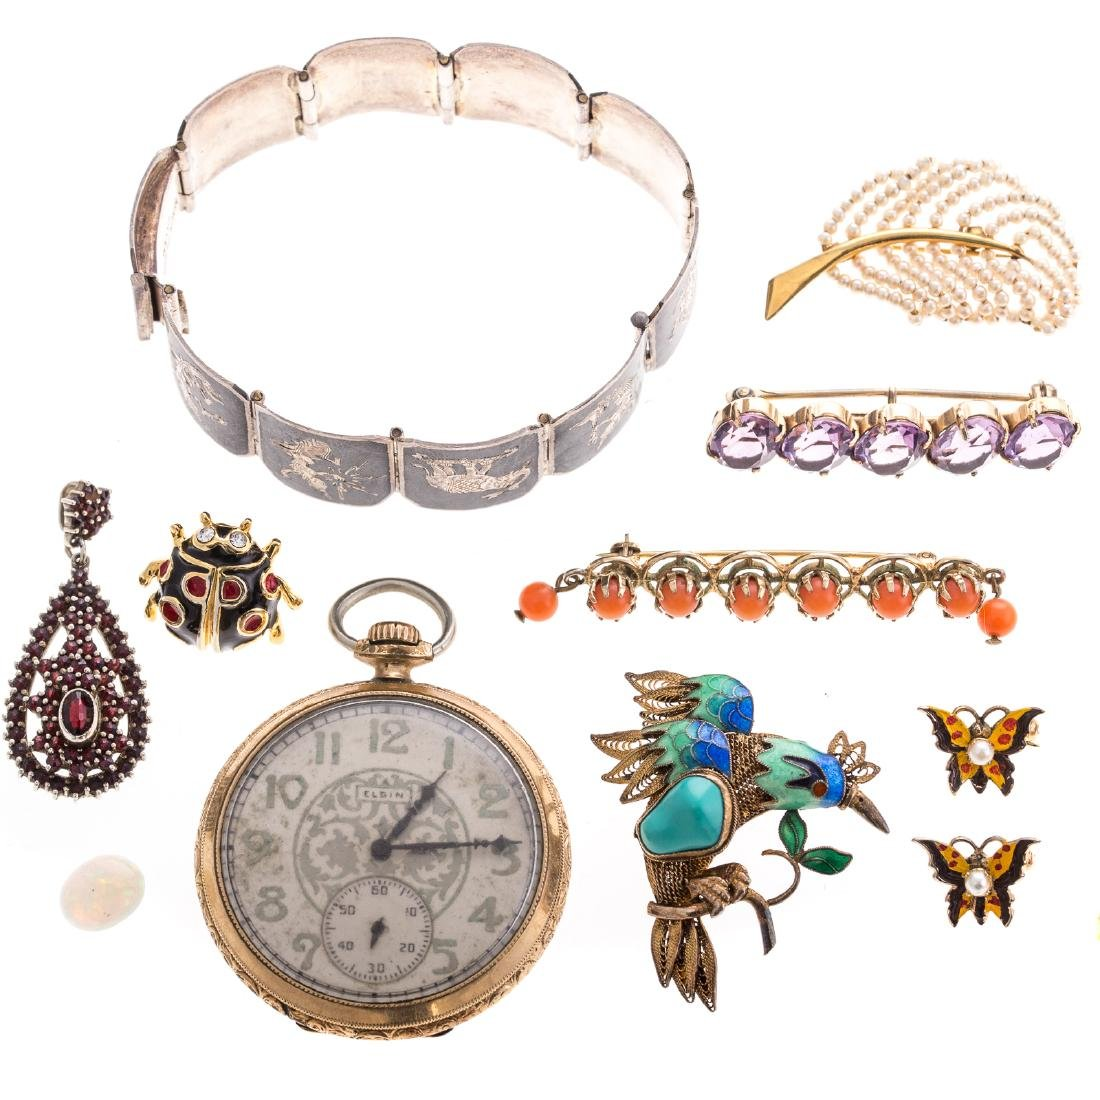 A Collection of Lady's Jewelry Featuring Amber - 3